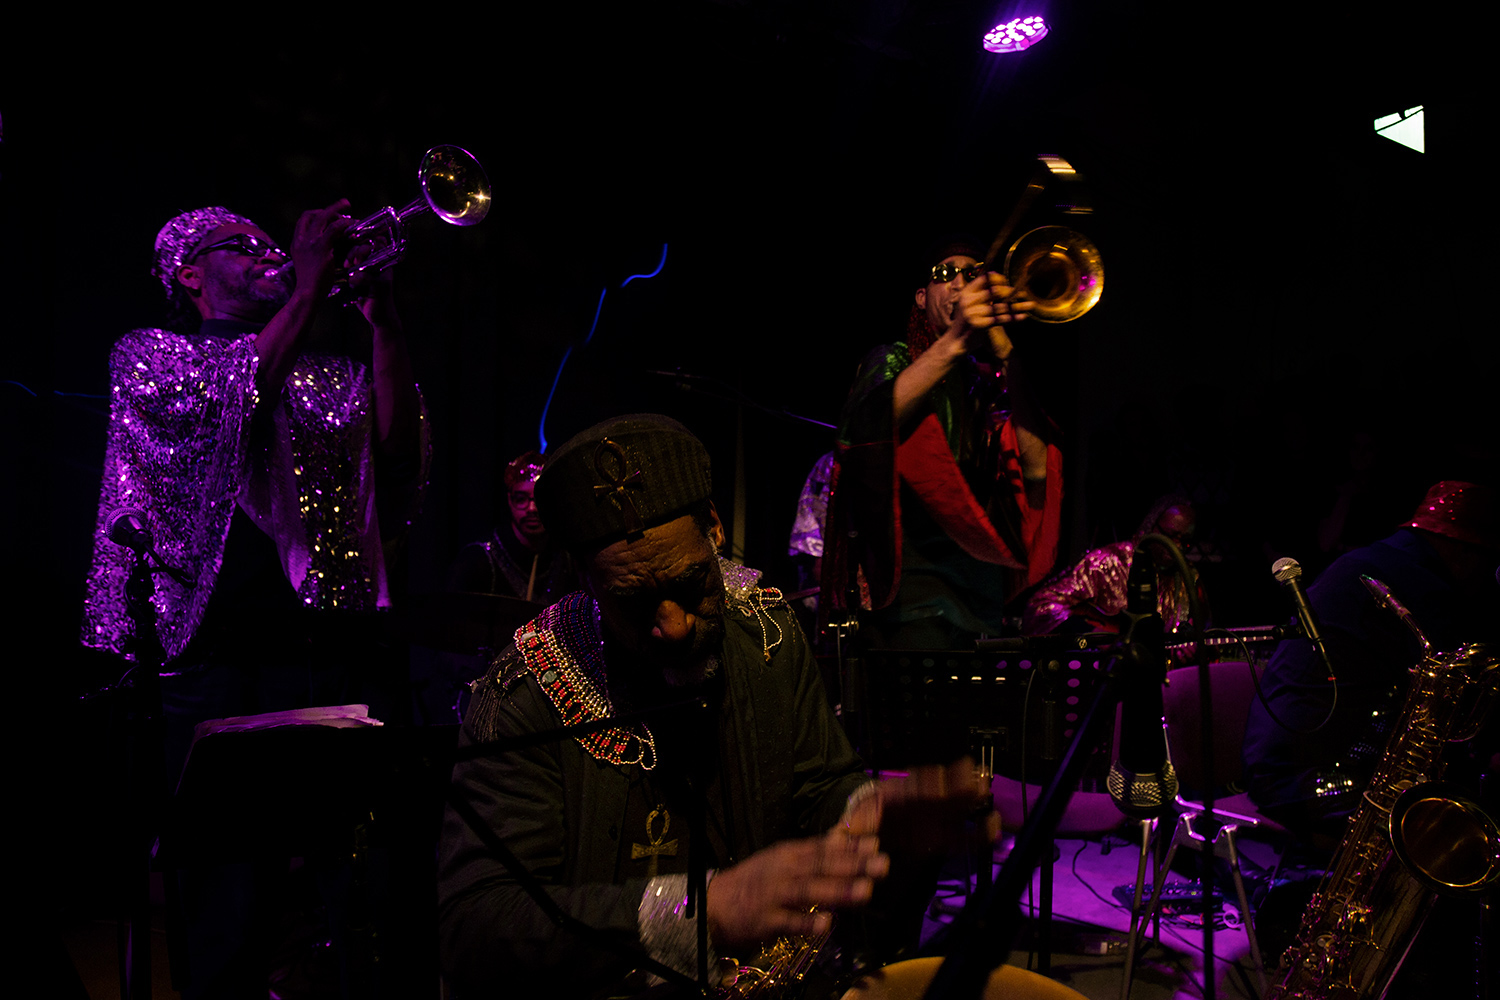 Sun Ra Arkestra directed by Marshall Allen by Laurent Orseau - Concert - Les Ateliers Claus - Brussels, Belgium #5